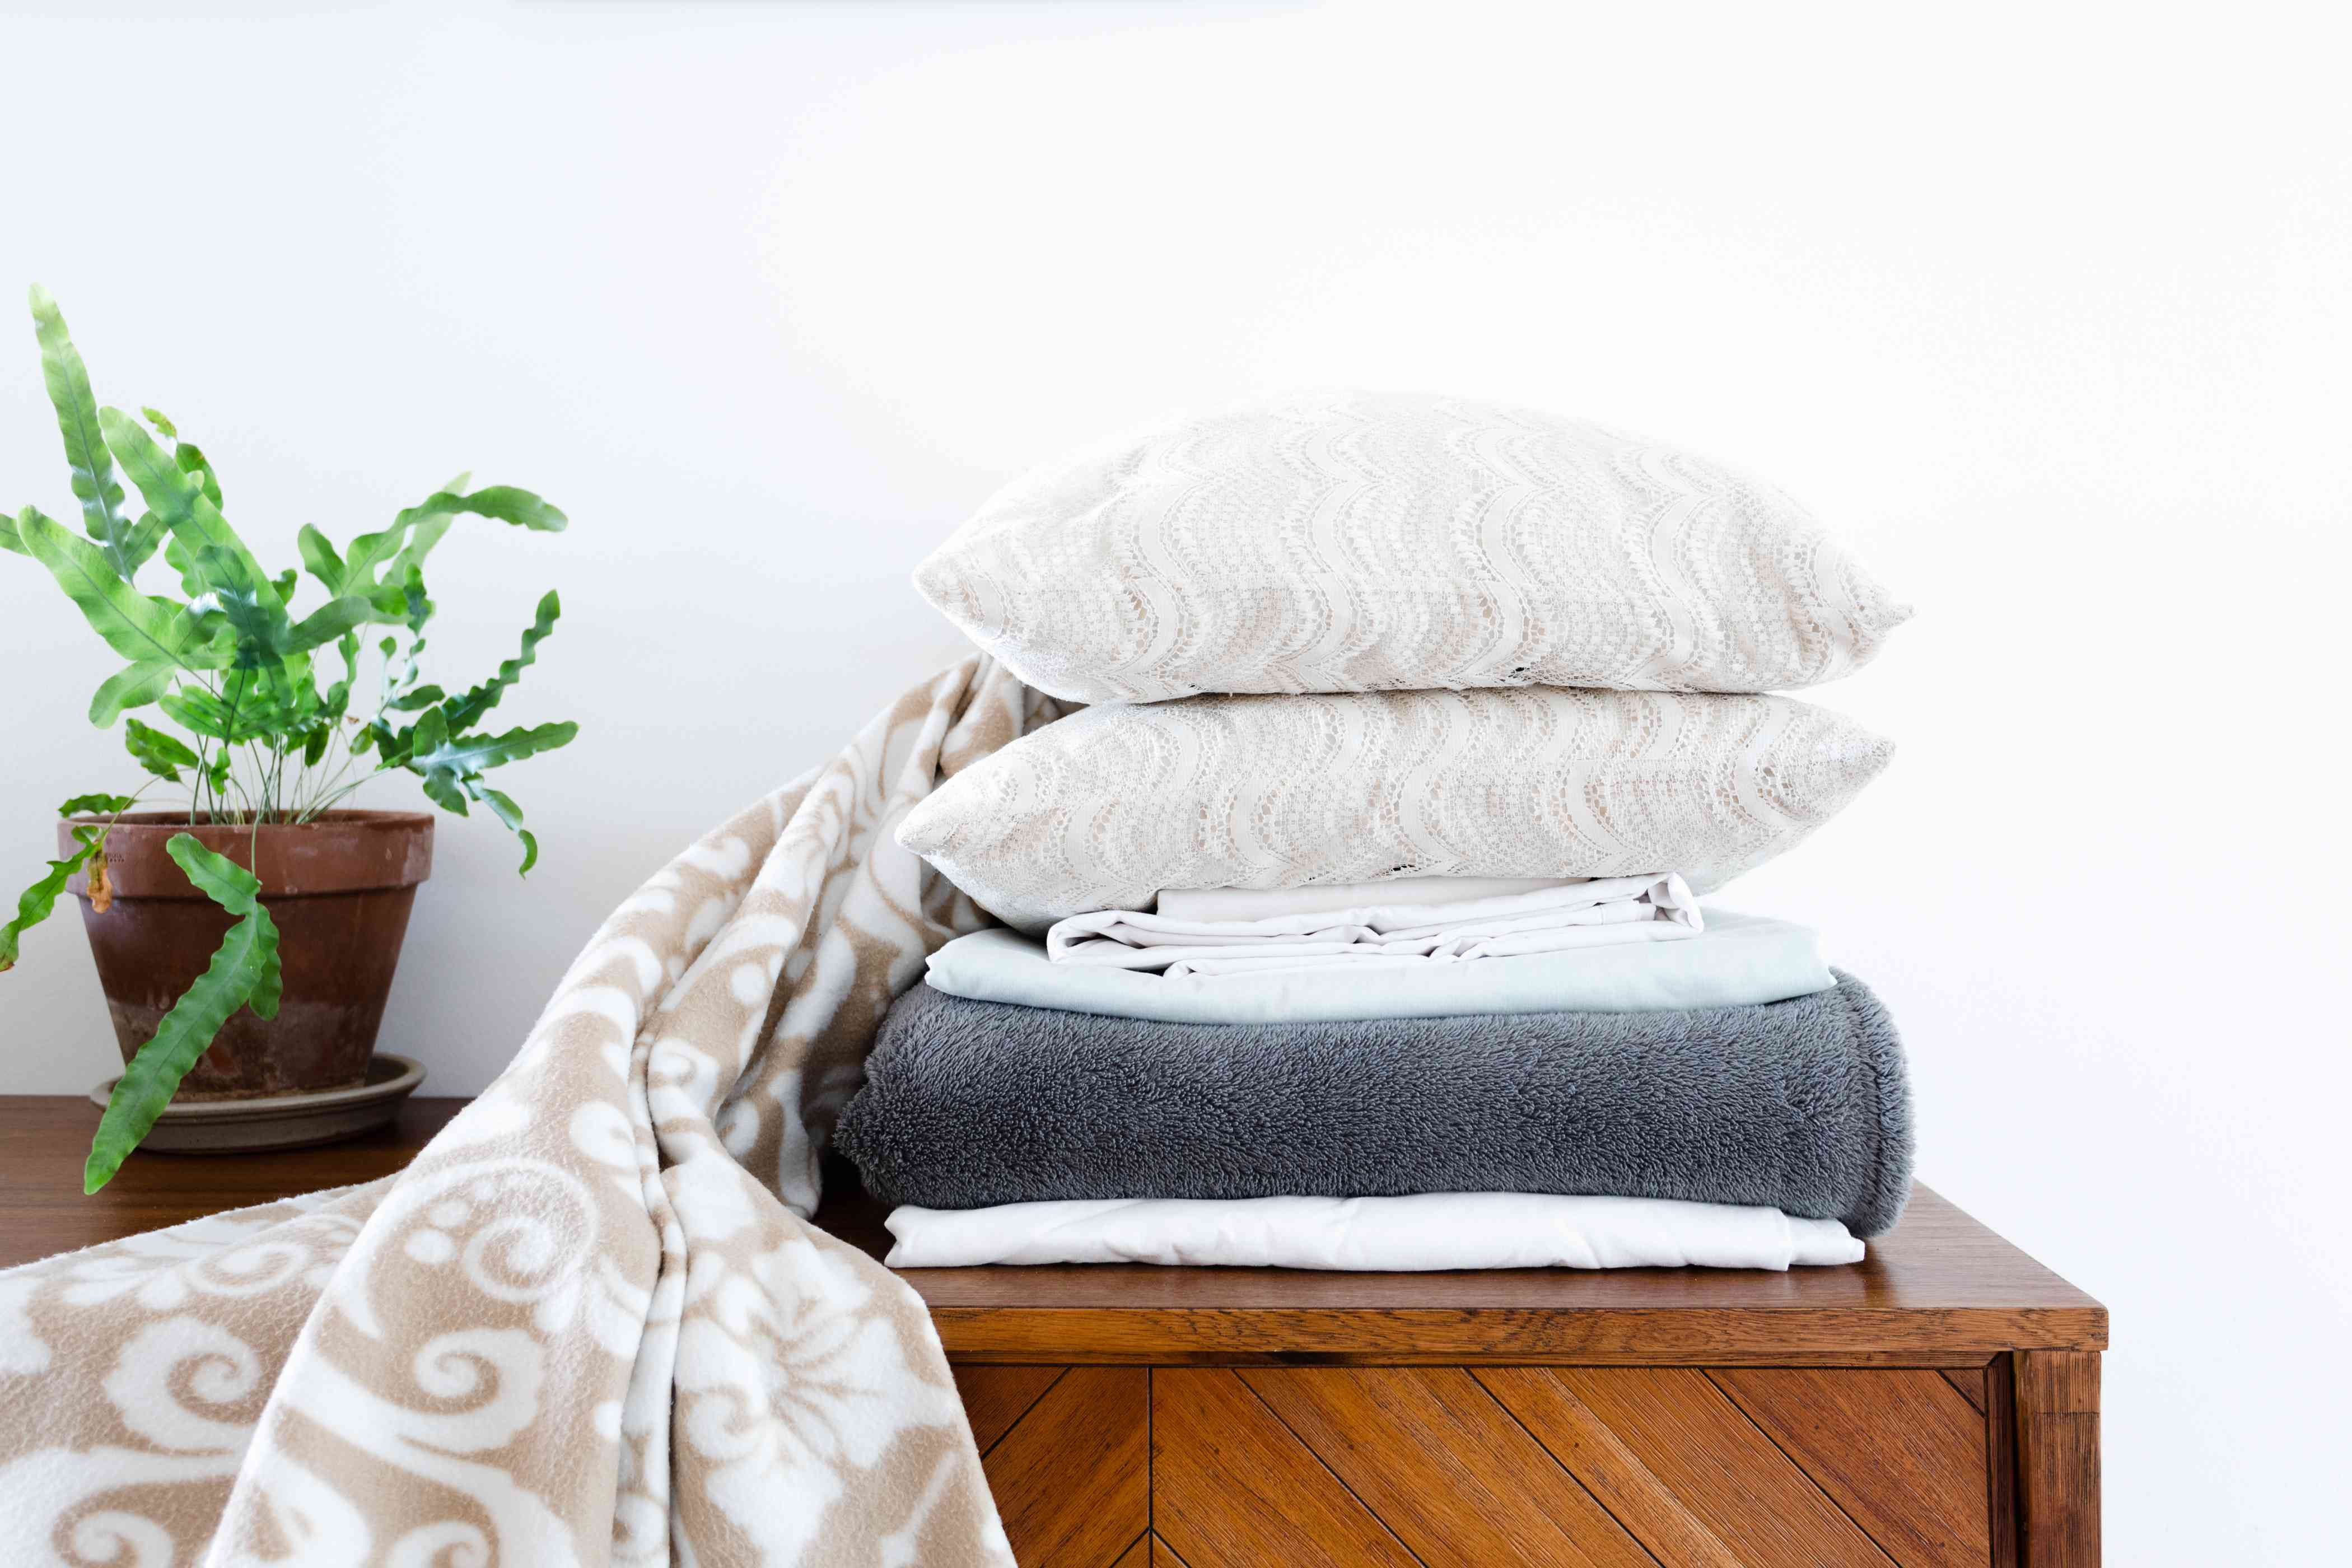 stack of bedding